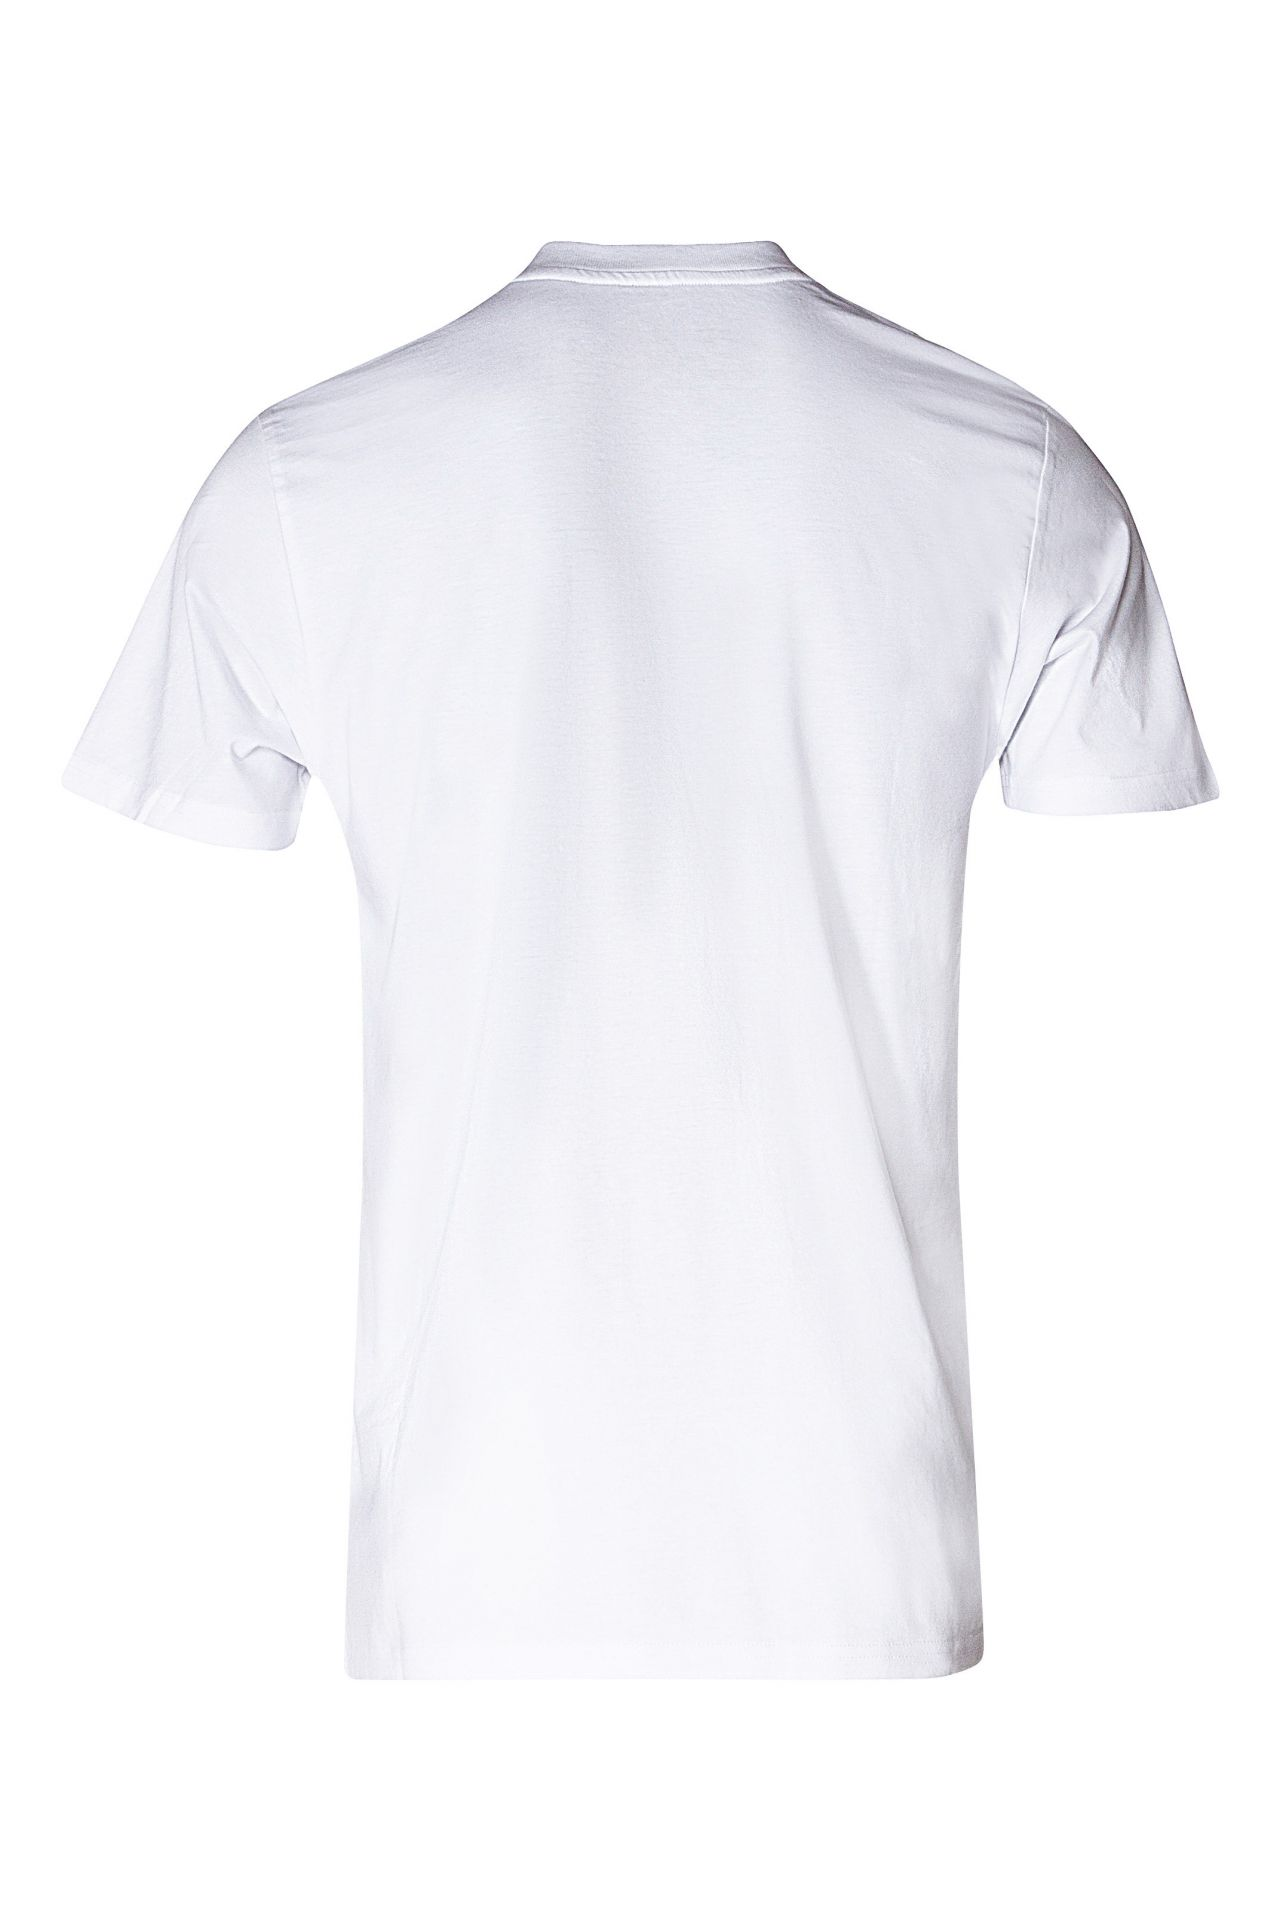 ROBIN'S RED LABEL AMERICAN EAGLE TEE IN WHITE